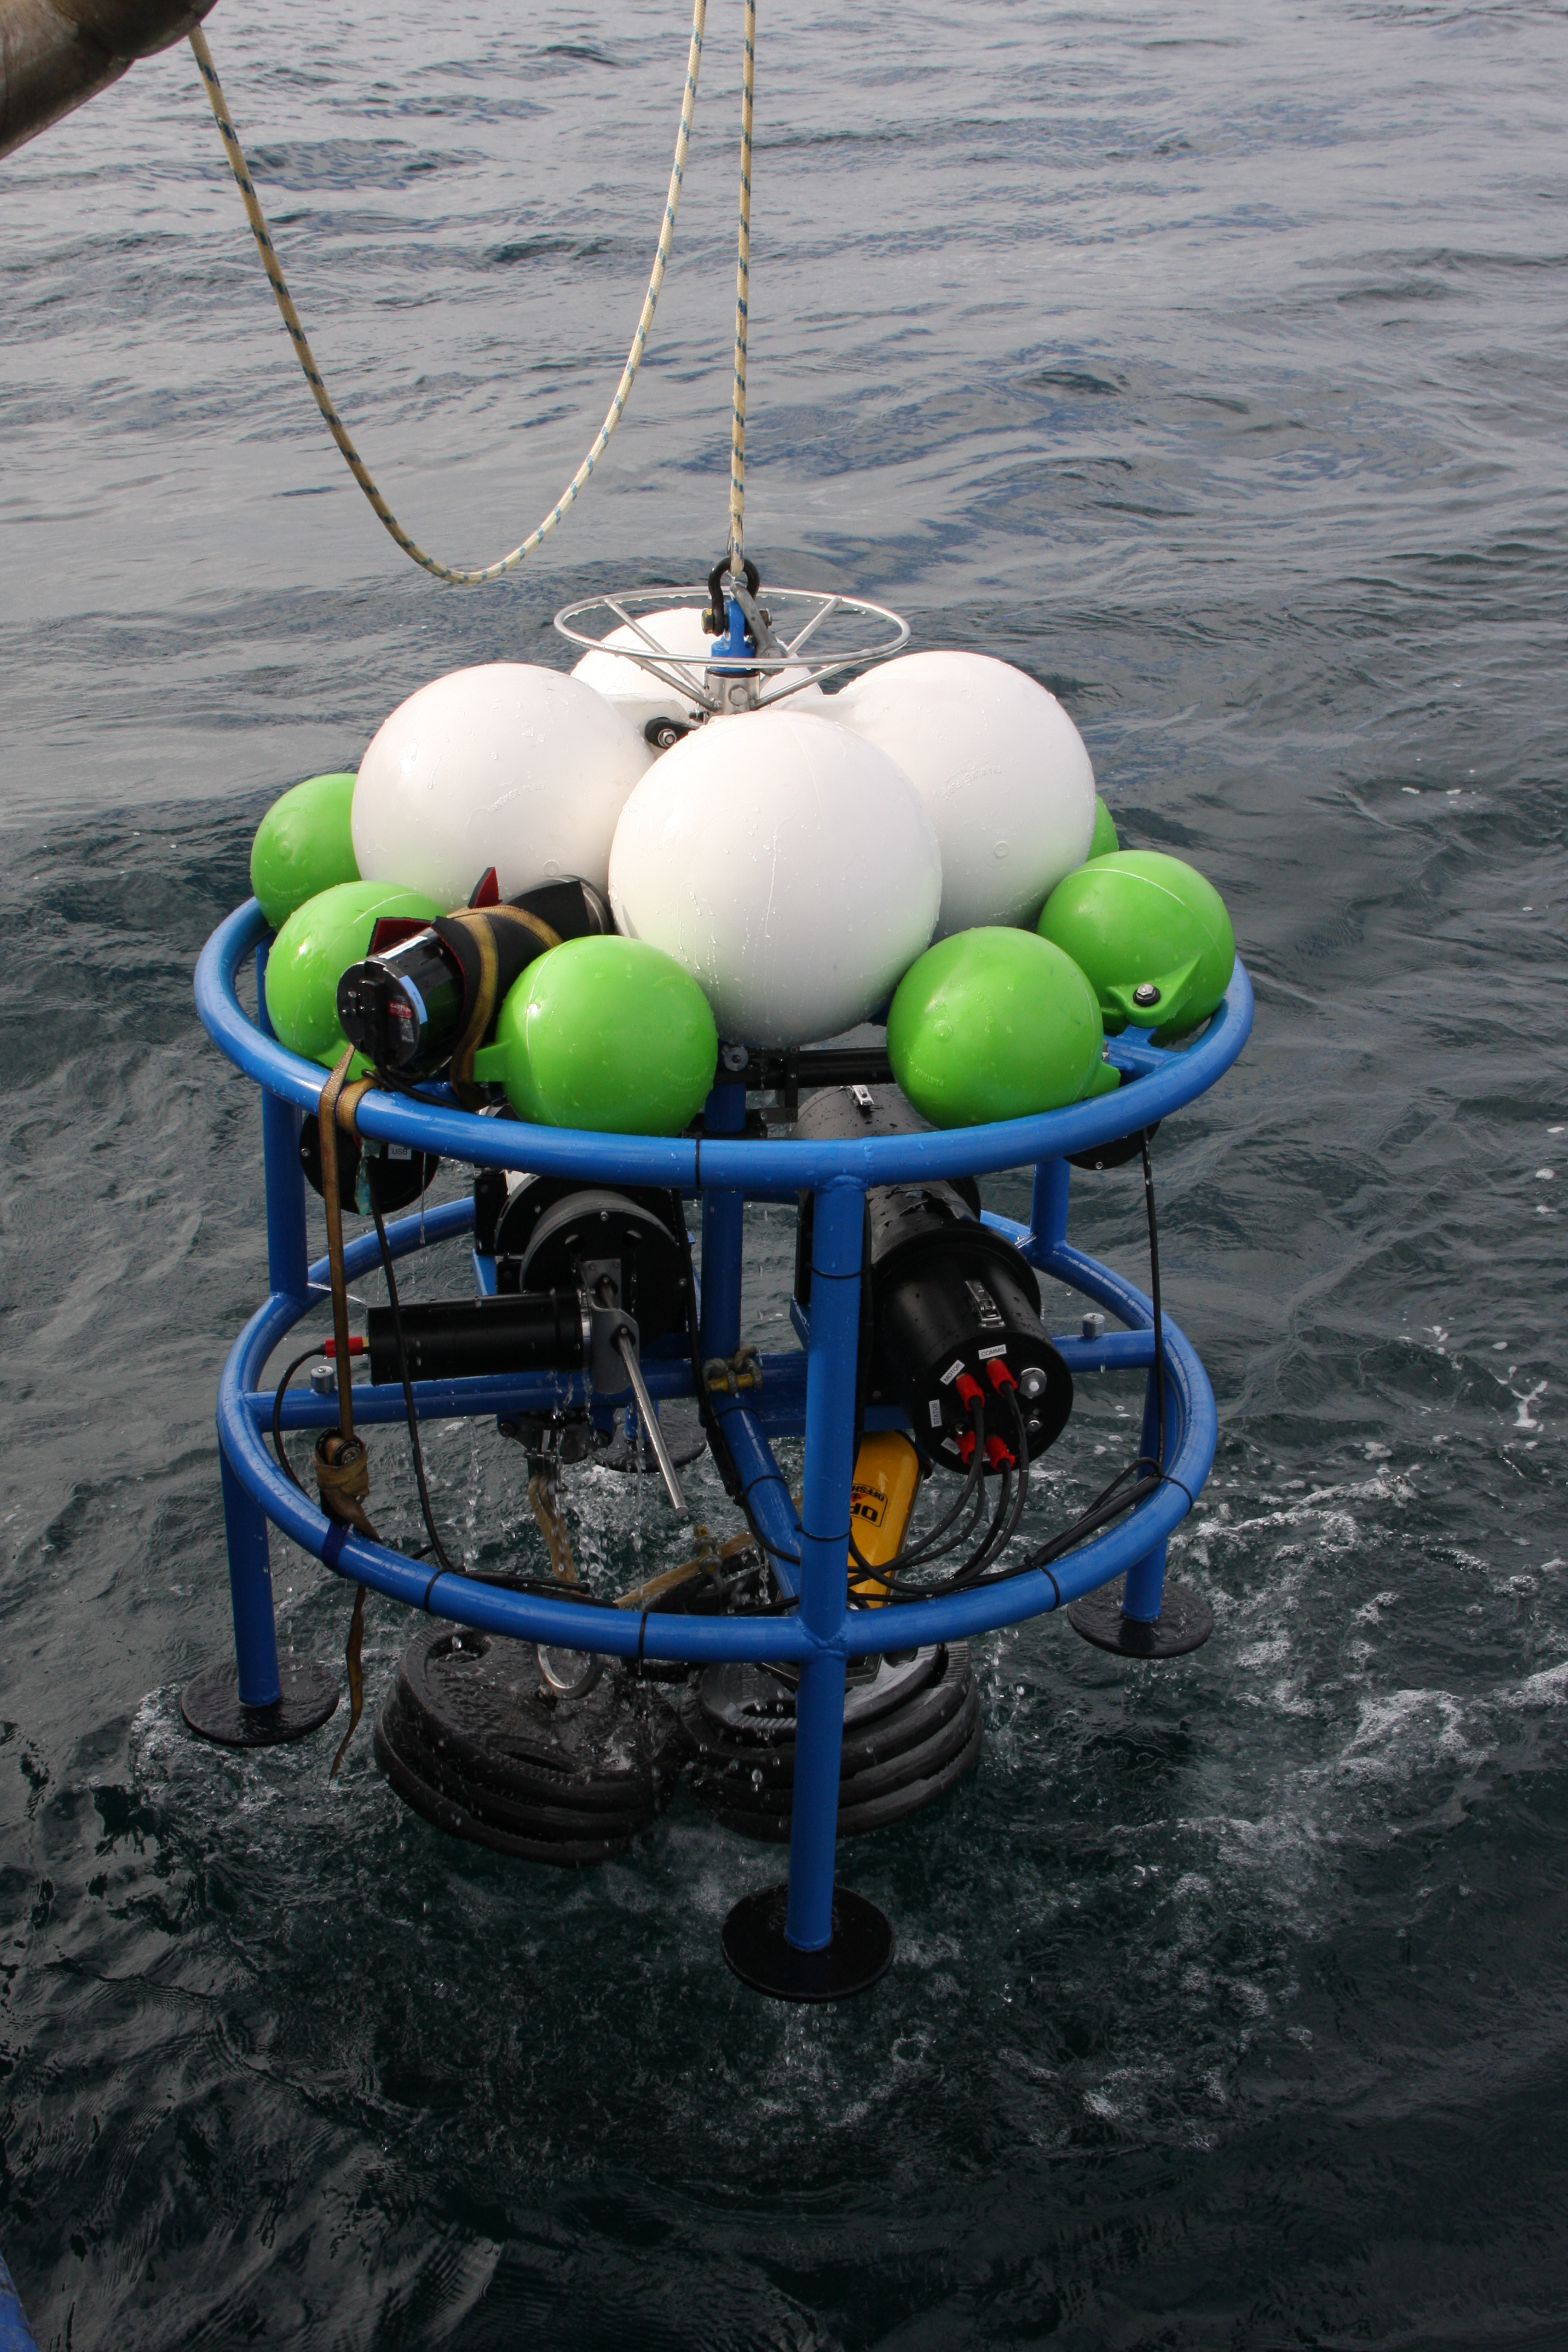 DeepBRUVS being deployed into the ocean